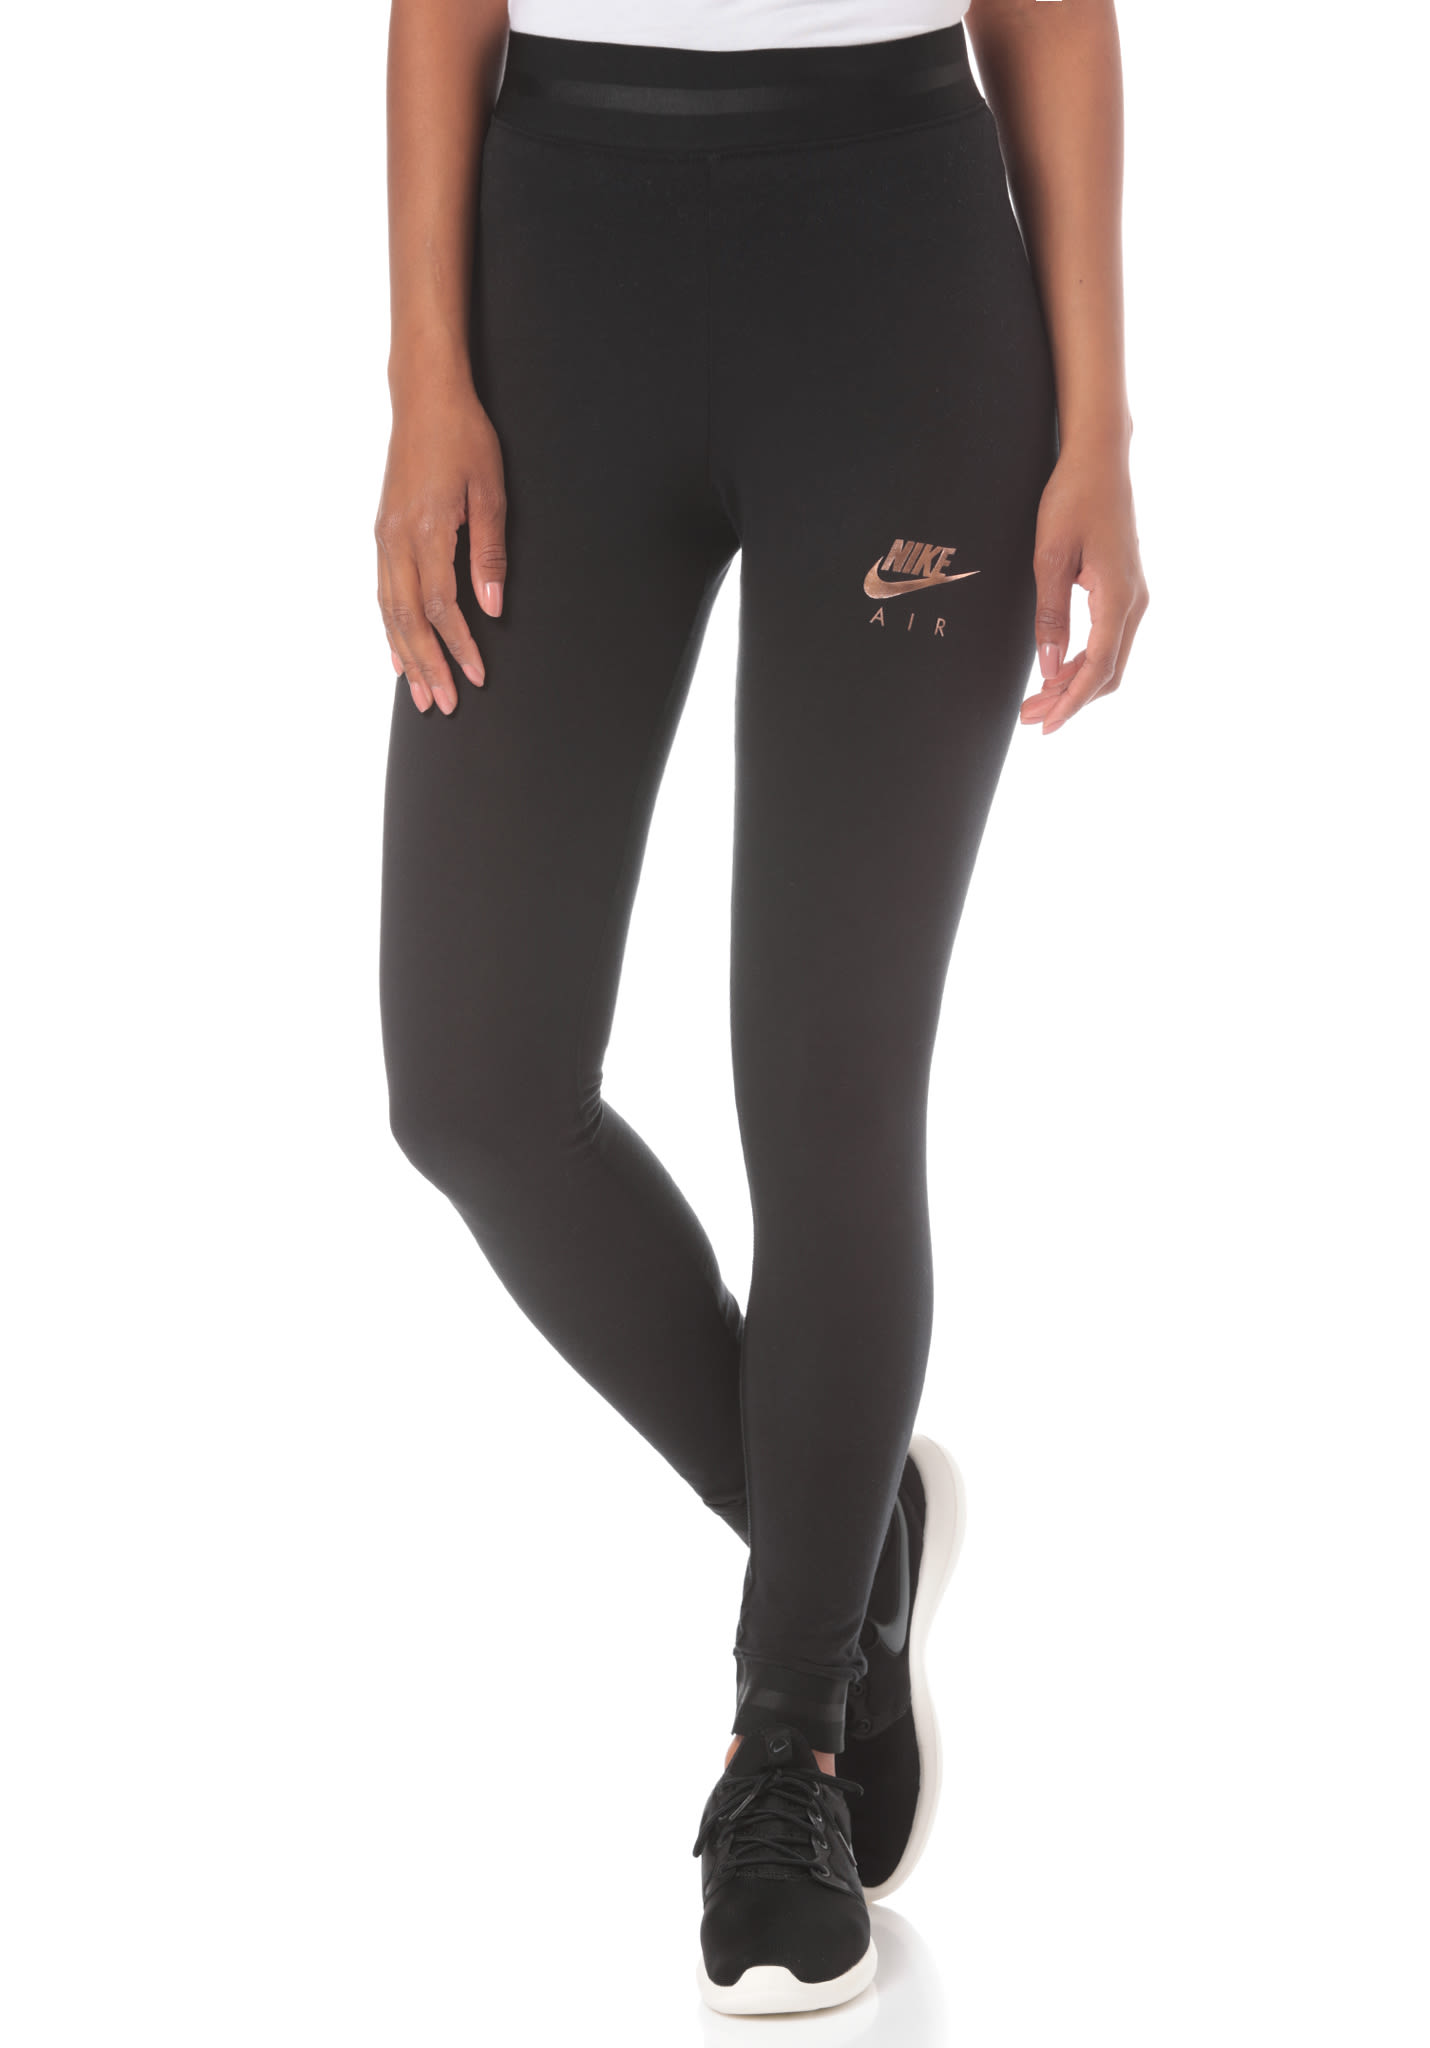 dbbf501cf8f5c NIKE SPORTSWEAR Air - Leggings for Women - Black - Planet Sports